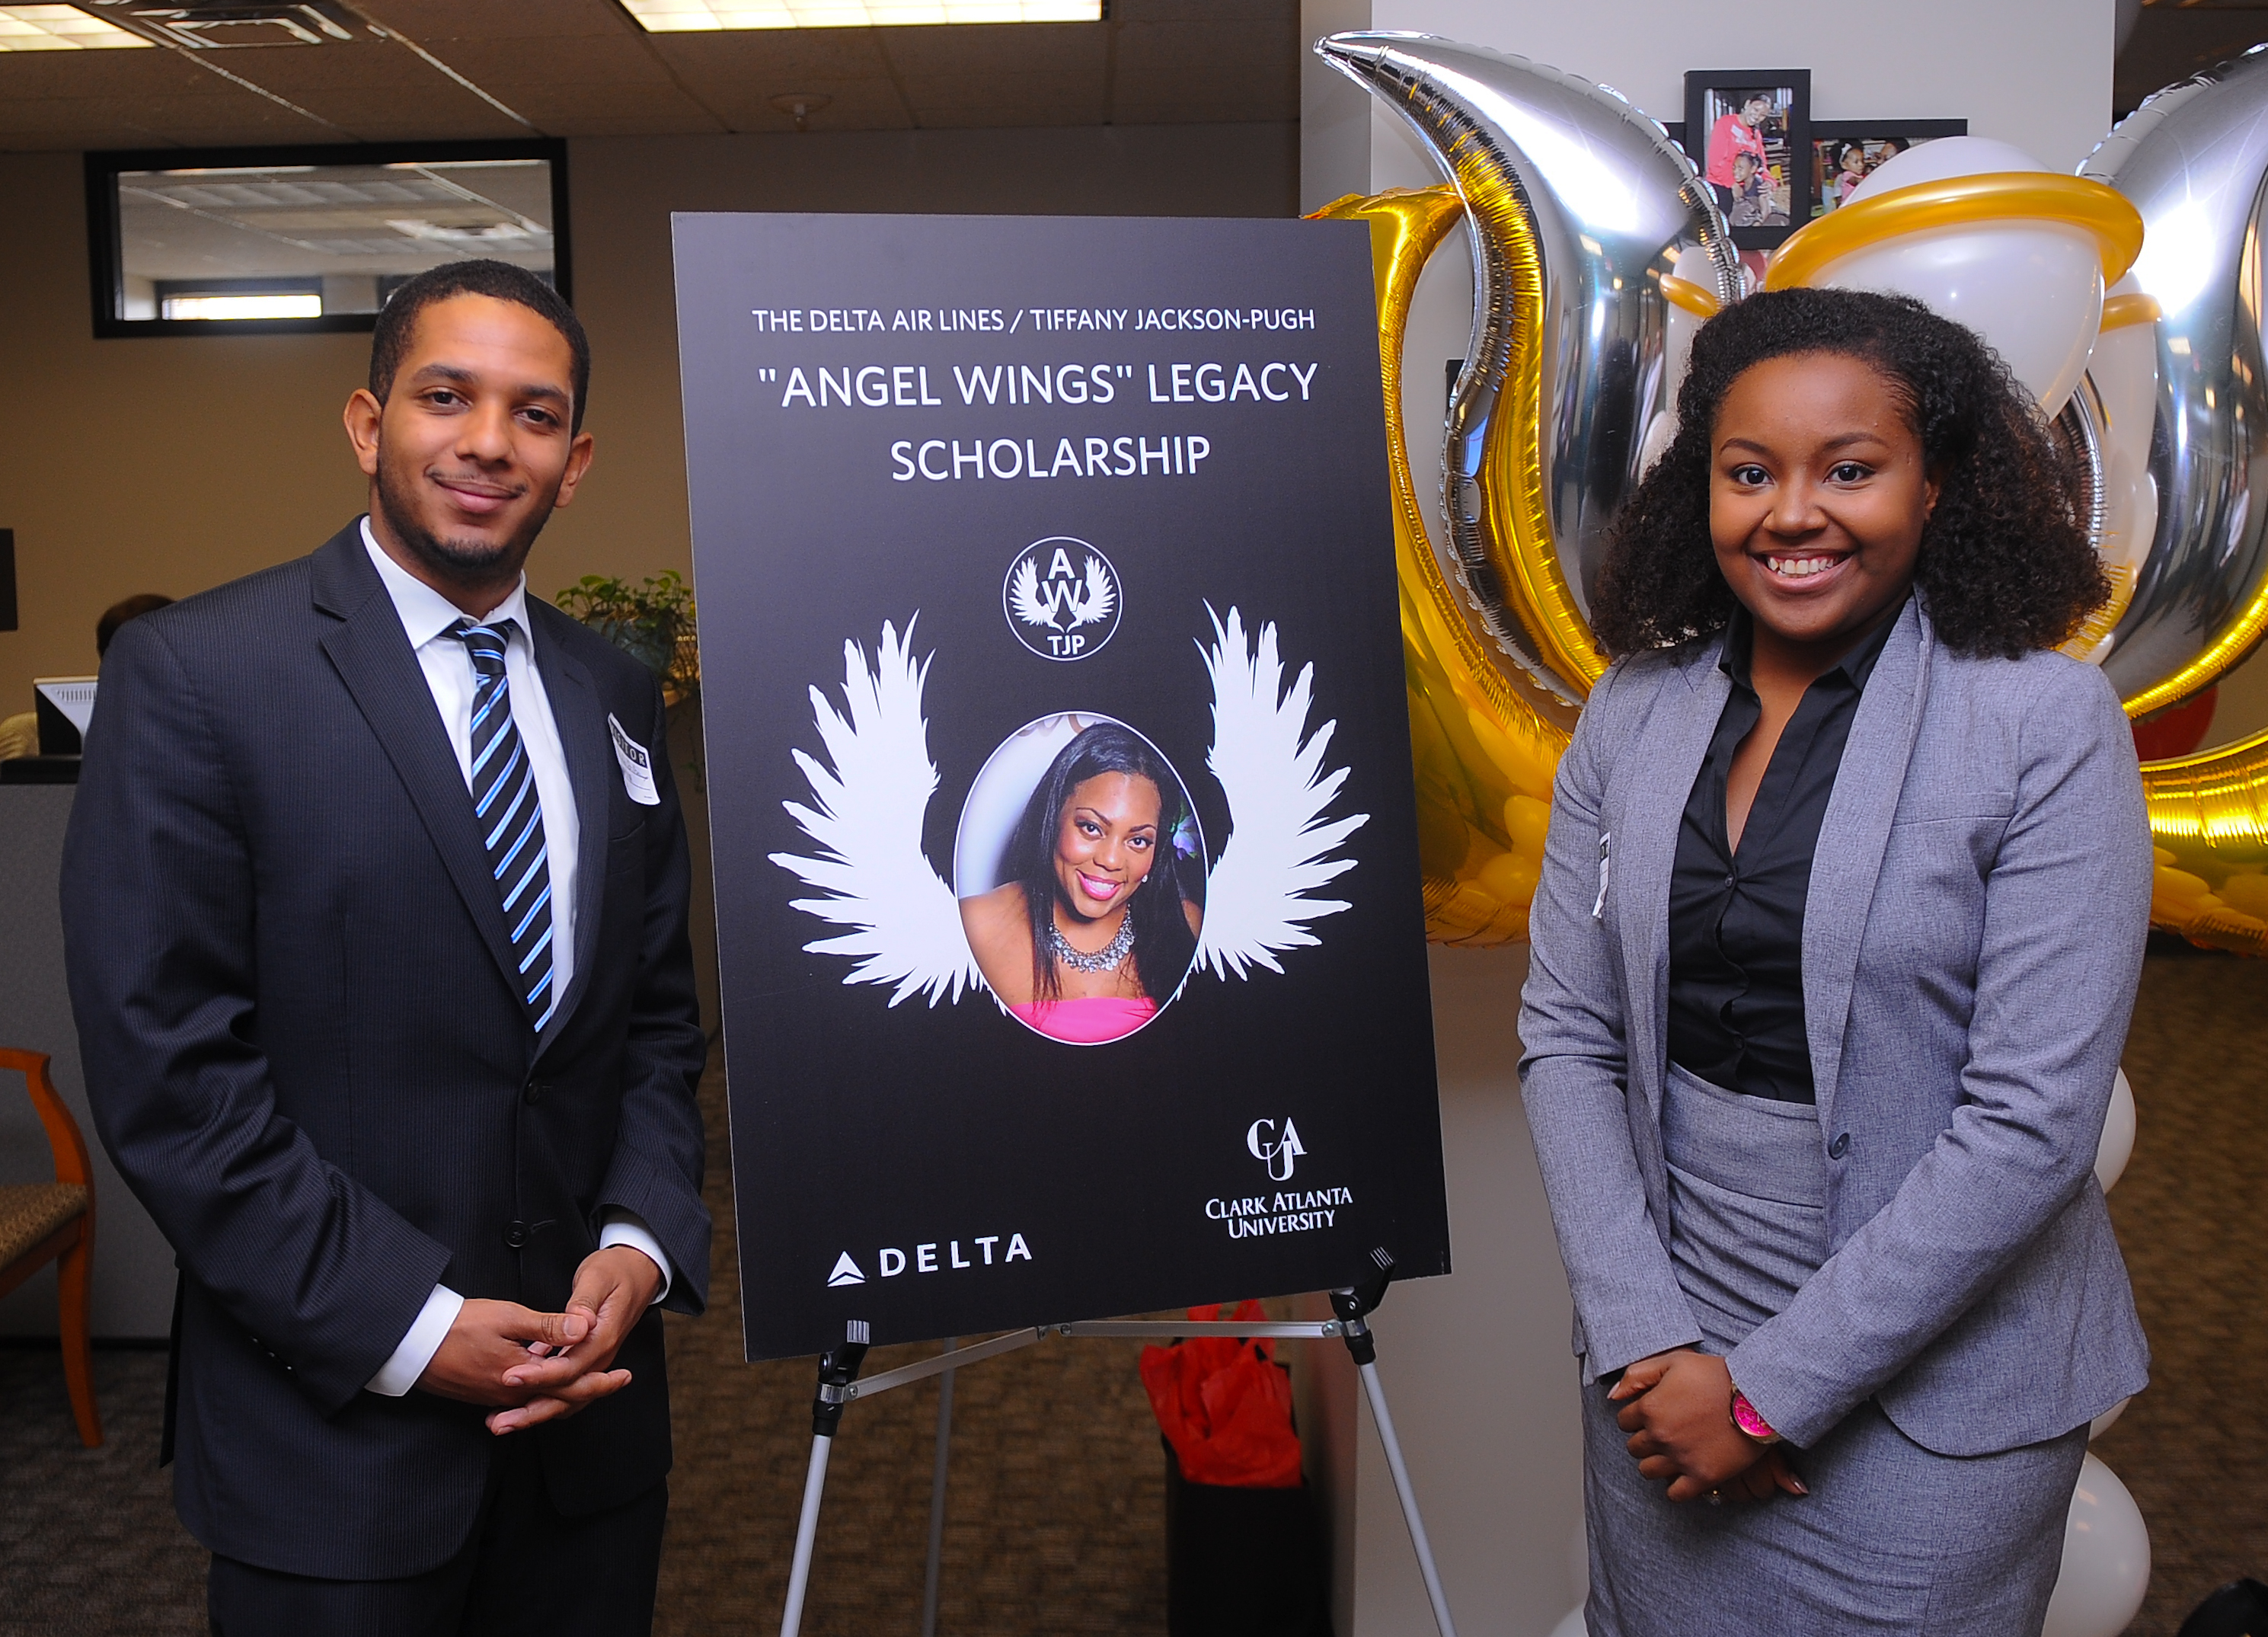 Angel Wings Scholarship sign with 2 people standing beside it